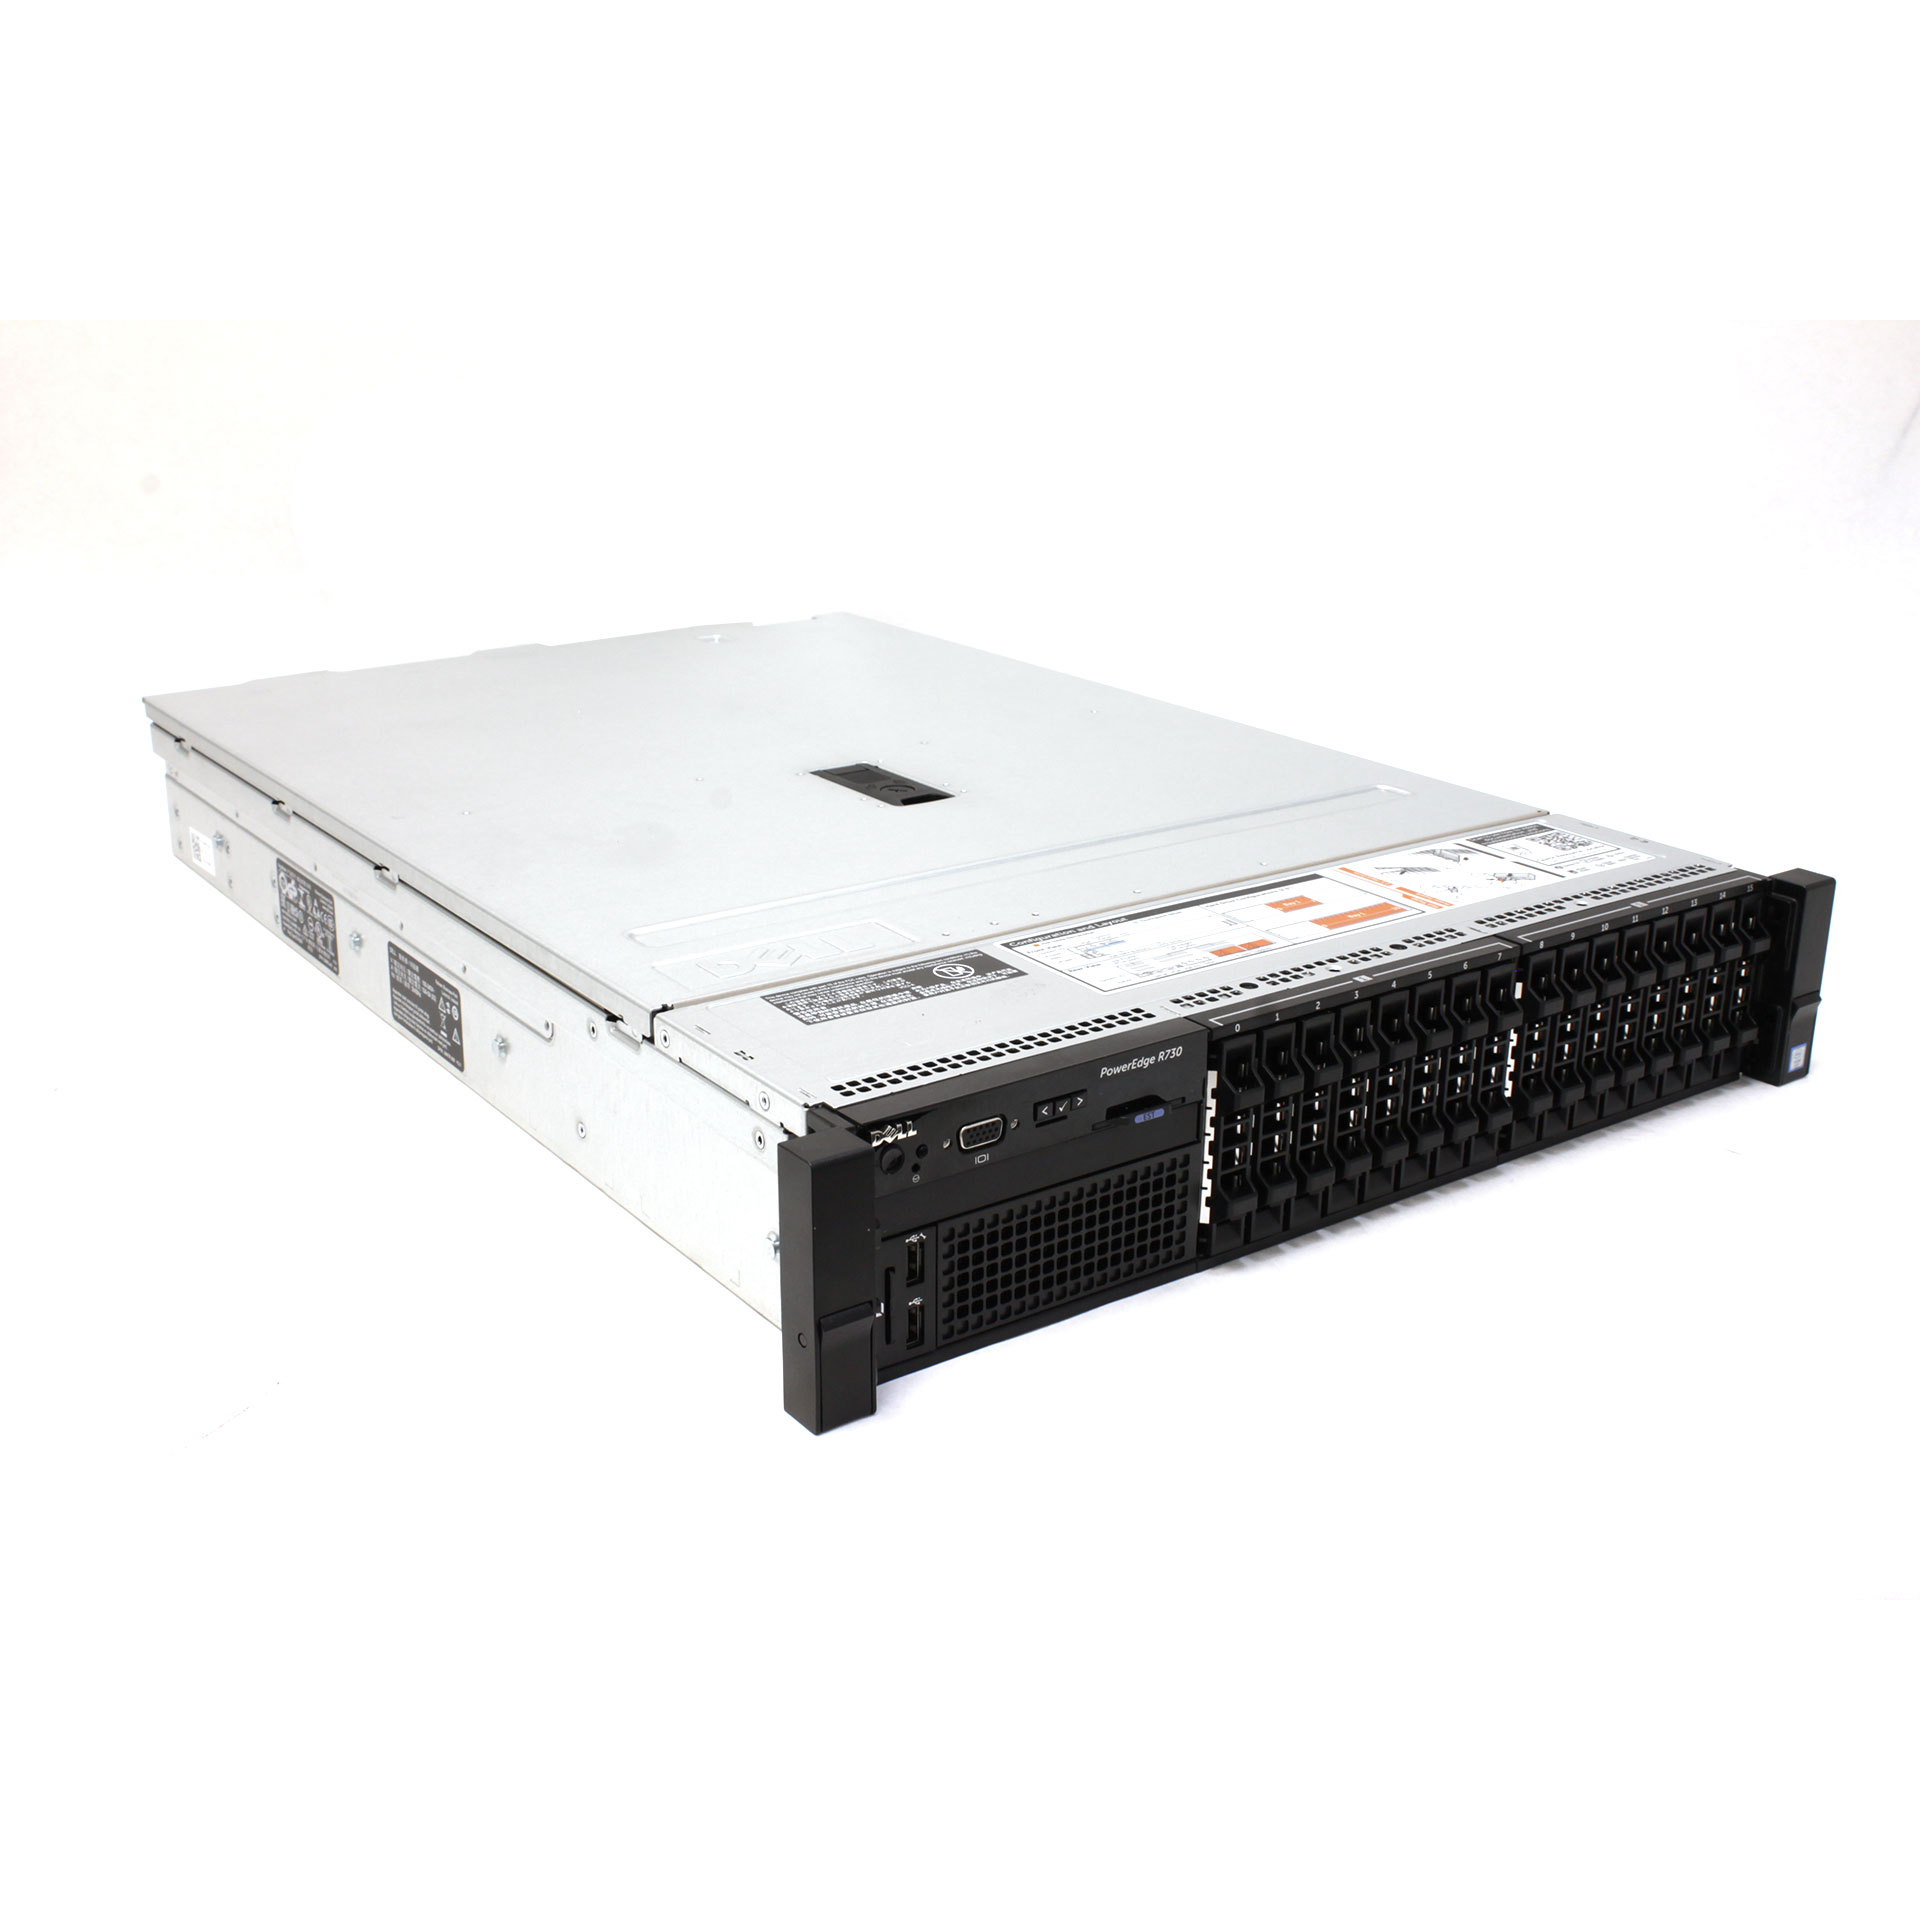 Dell PowerEdge R730 Xeon E5-2640 v4 32GB RAM 600GB 10K HDD 2U